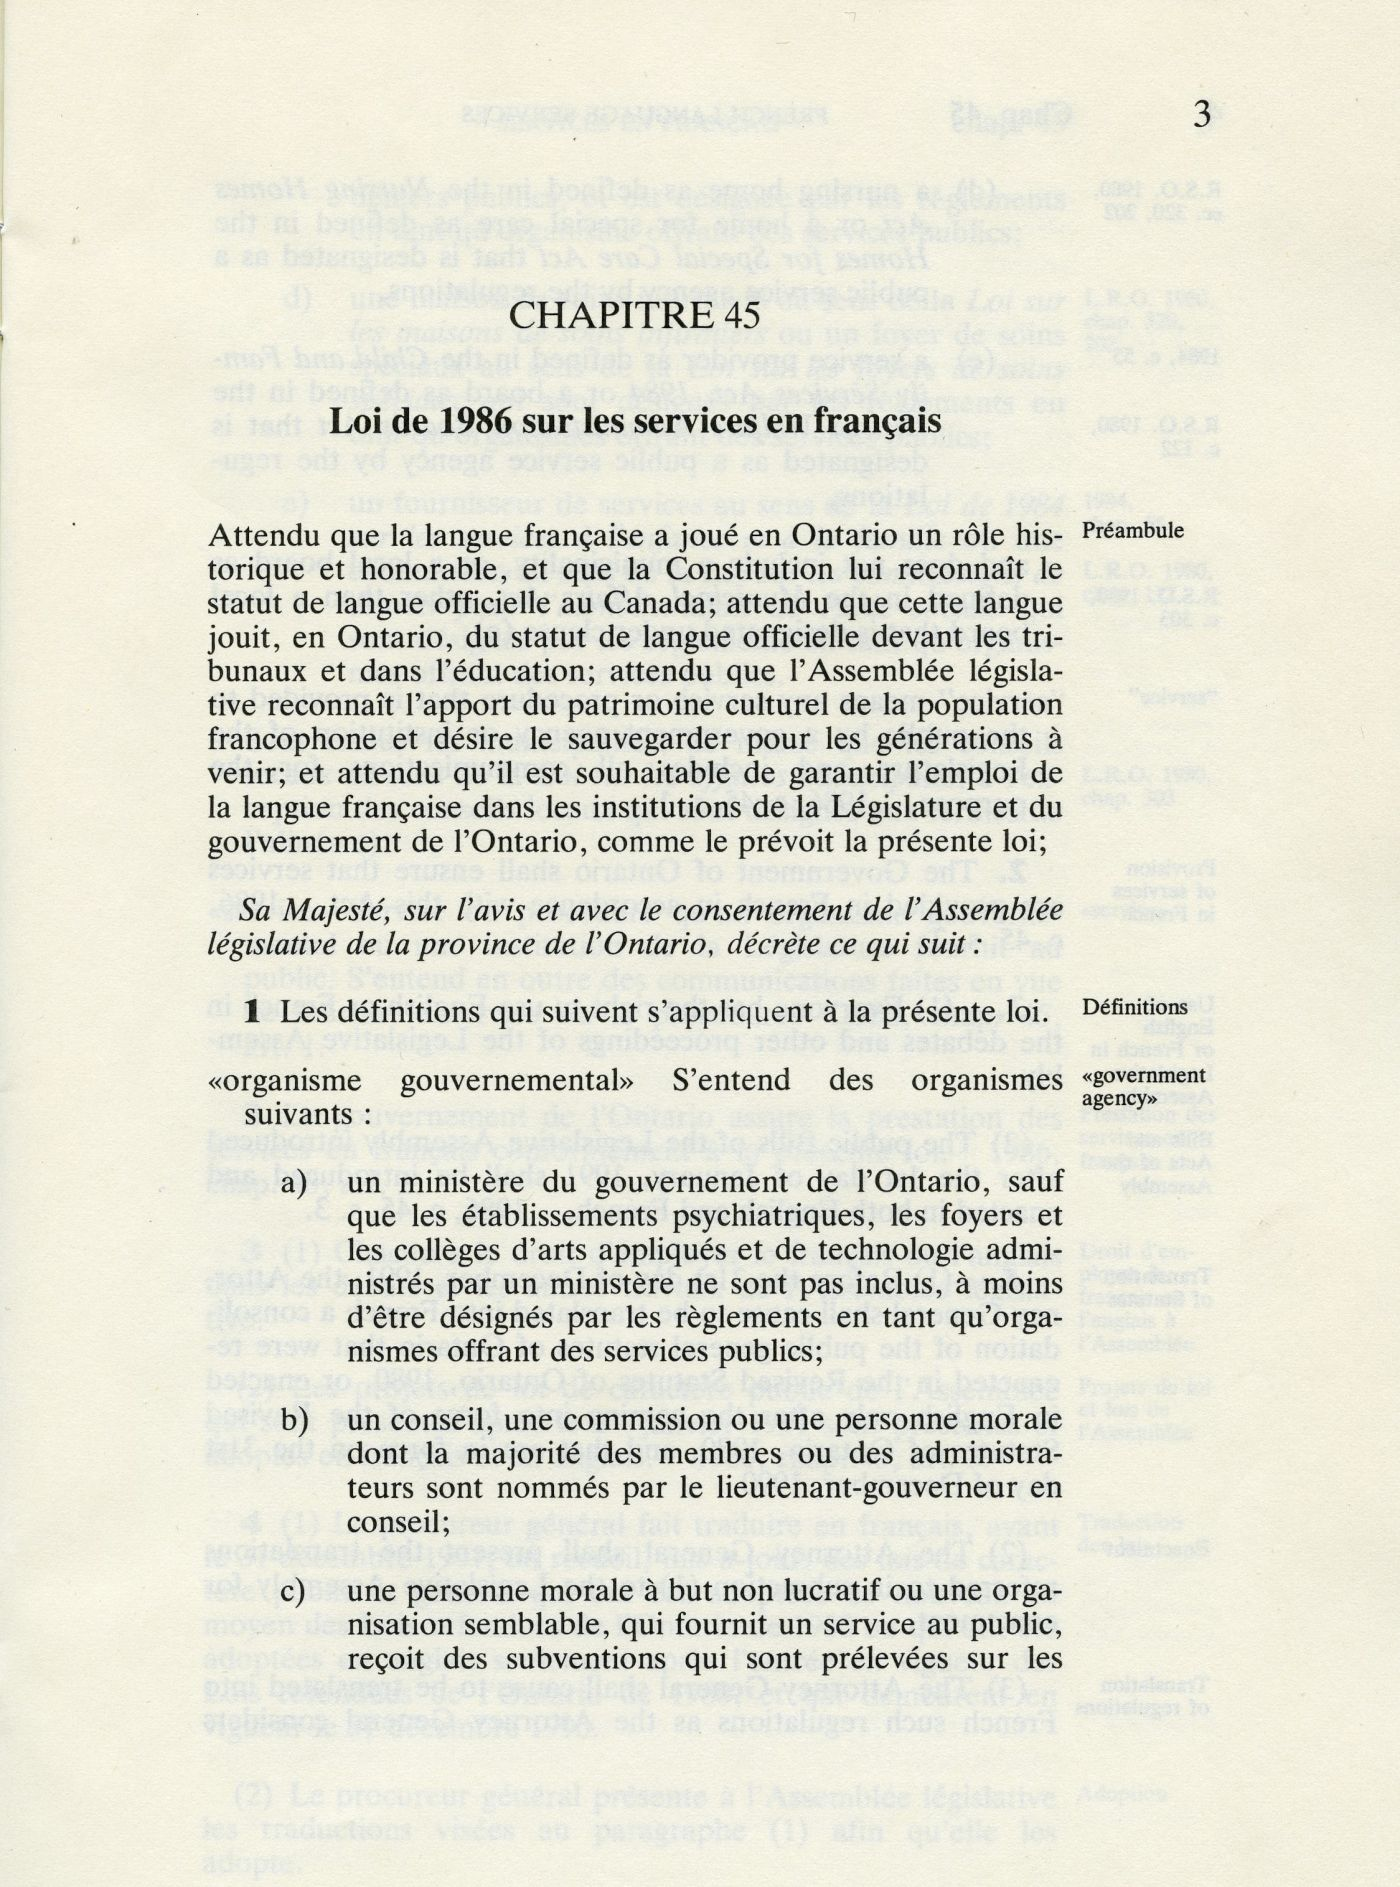 Printed document. The Ontario coat of arms positioned at the top of the cover, followed by the English title of the Act in the left column, and the French title of the Act in the right column. Page 3 contains French text. The text of the Act appears on the left, with annotations in smaller letters to the right.